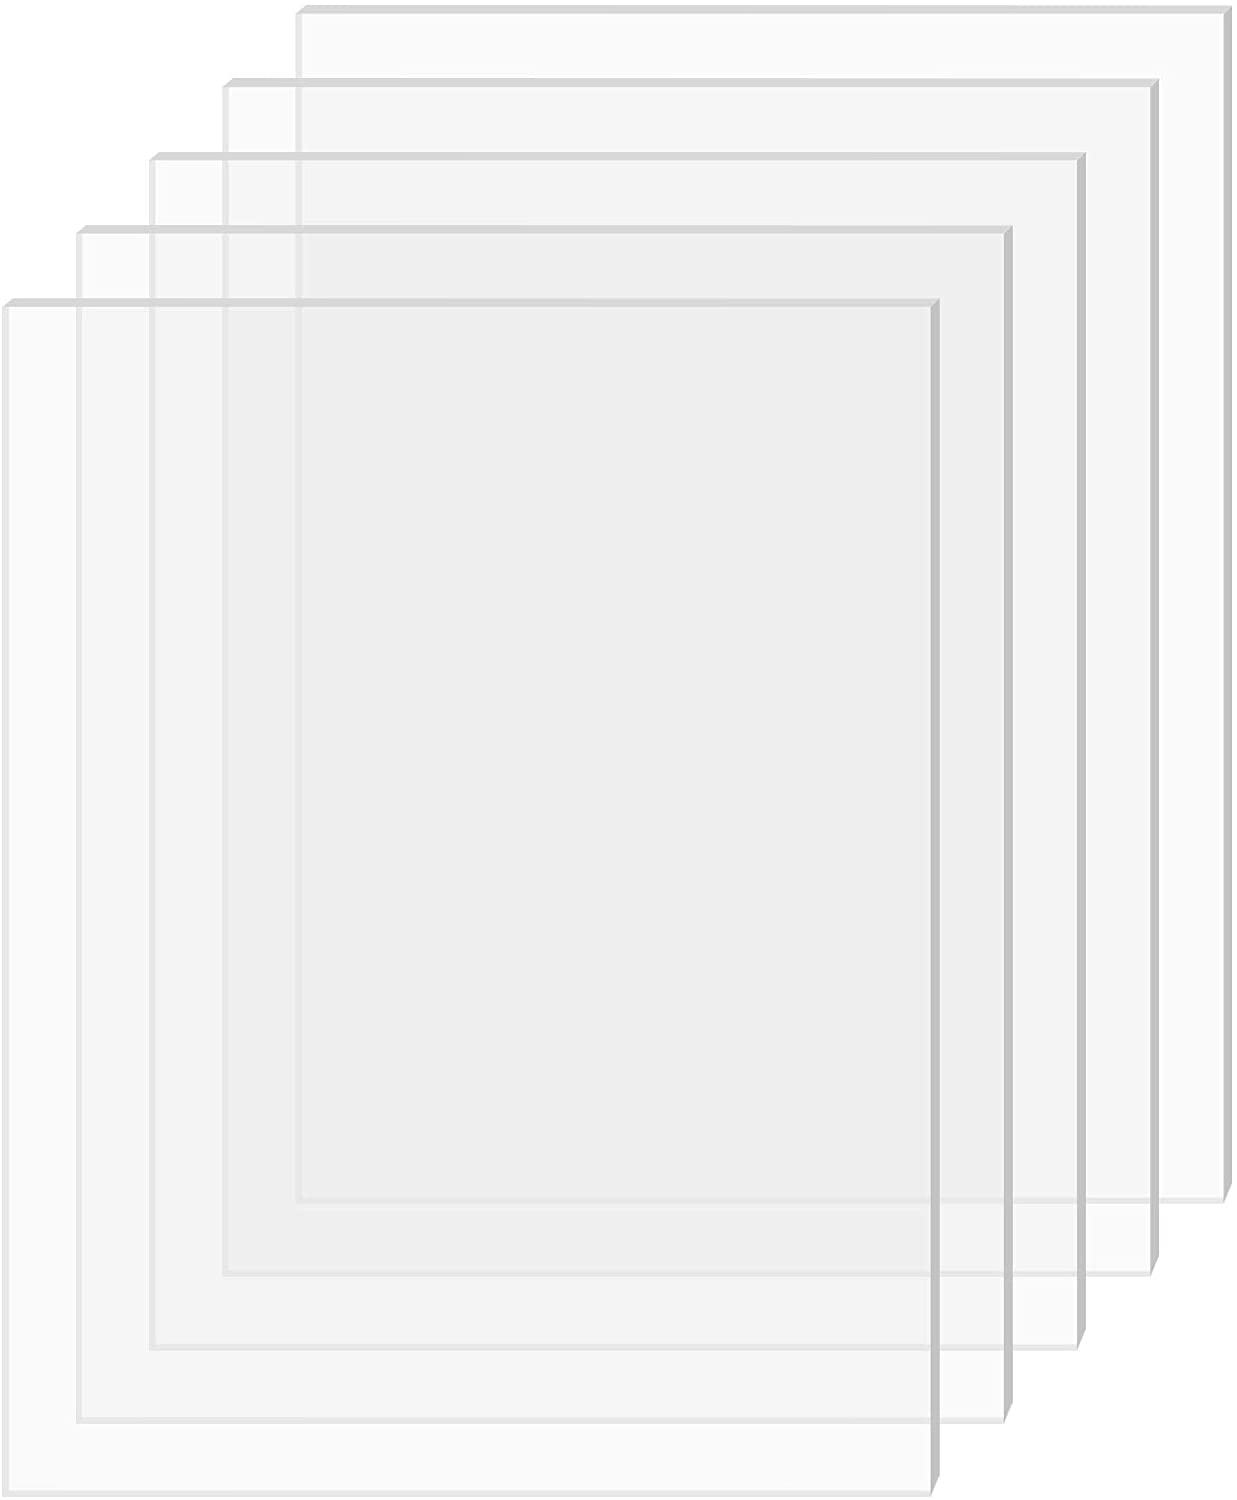 "SimbaLux Acrylic Sheet Clear Cast Plexiglass 5"" x 7"" 0.08"" Thick (2mm) Pack of 5 Transparent Plastic Plexi Glass Board with Protective Paper for Photo Frame Replacement, DIY Display Projects, Craft"